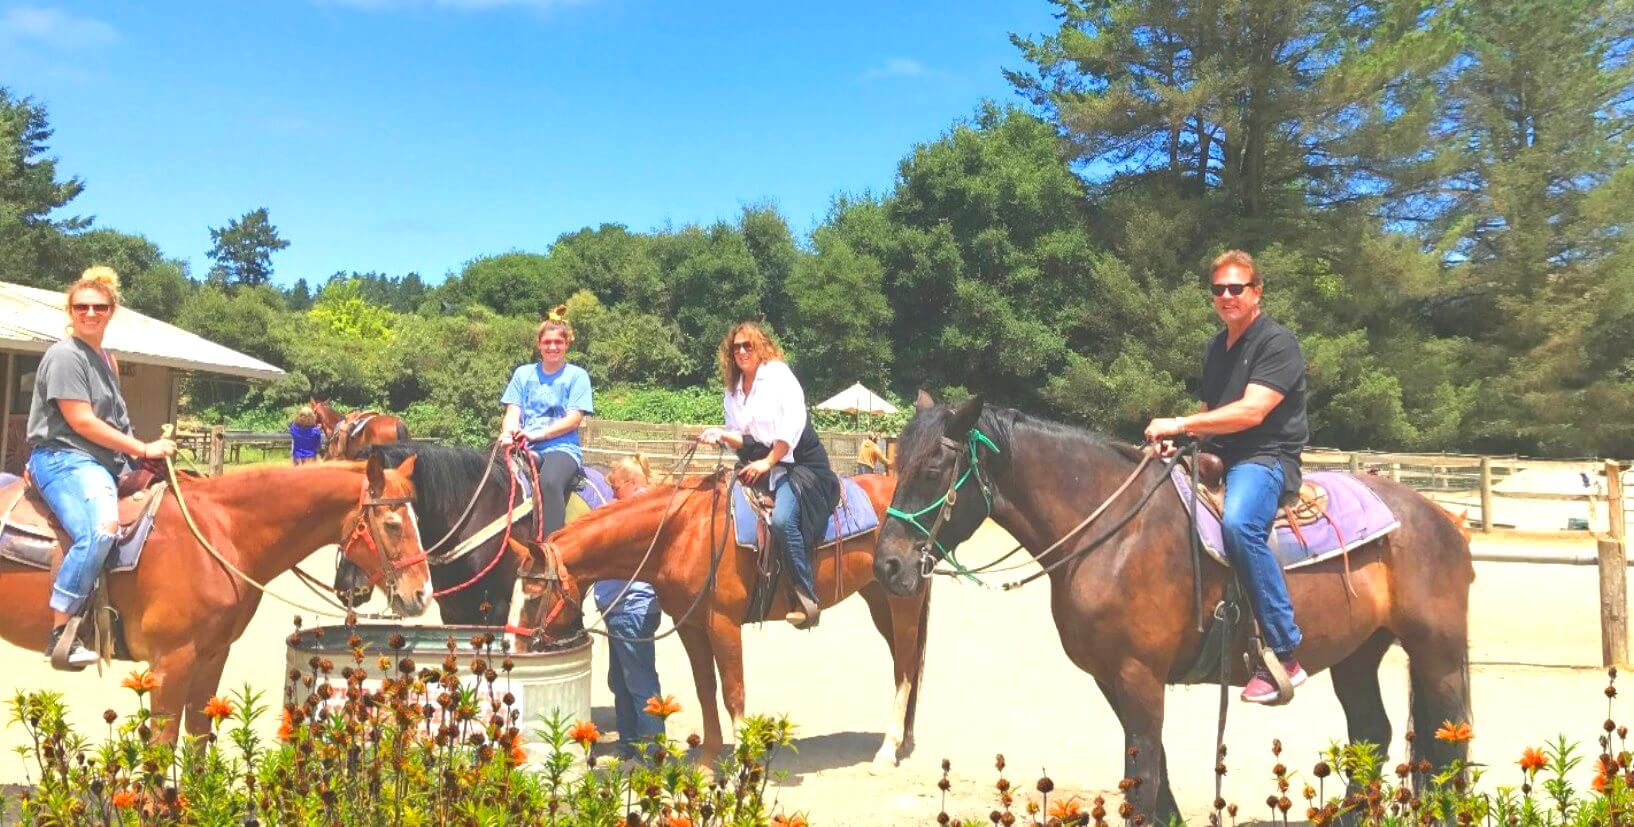 Horseback-Rides-on-the-Beach-SanFrancisco-Occean-beach-muirwoodsf